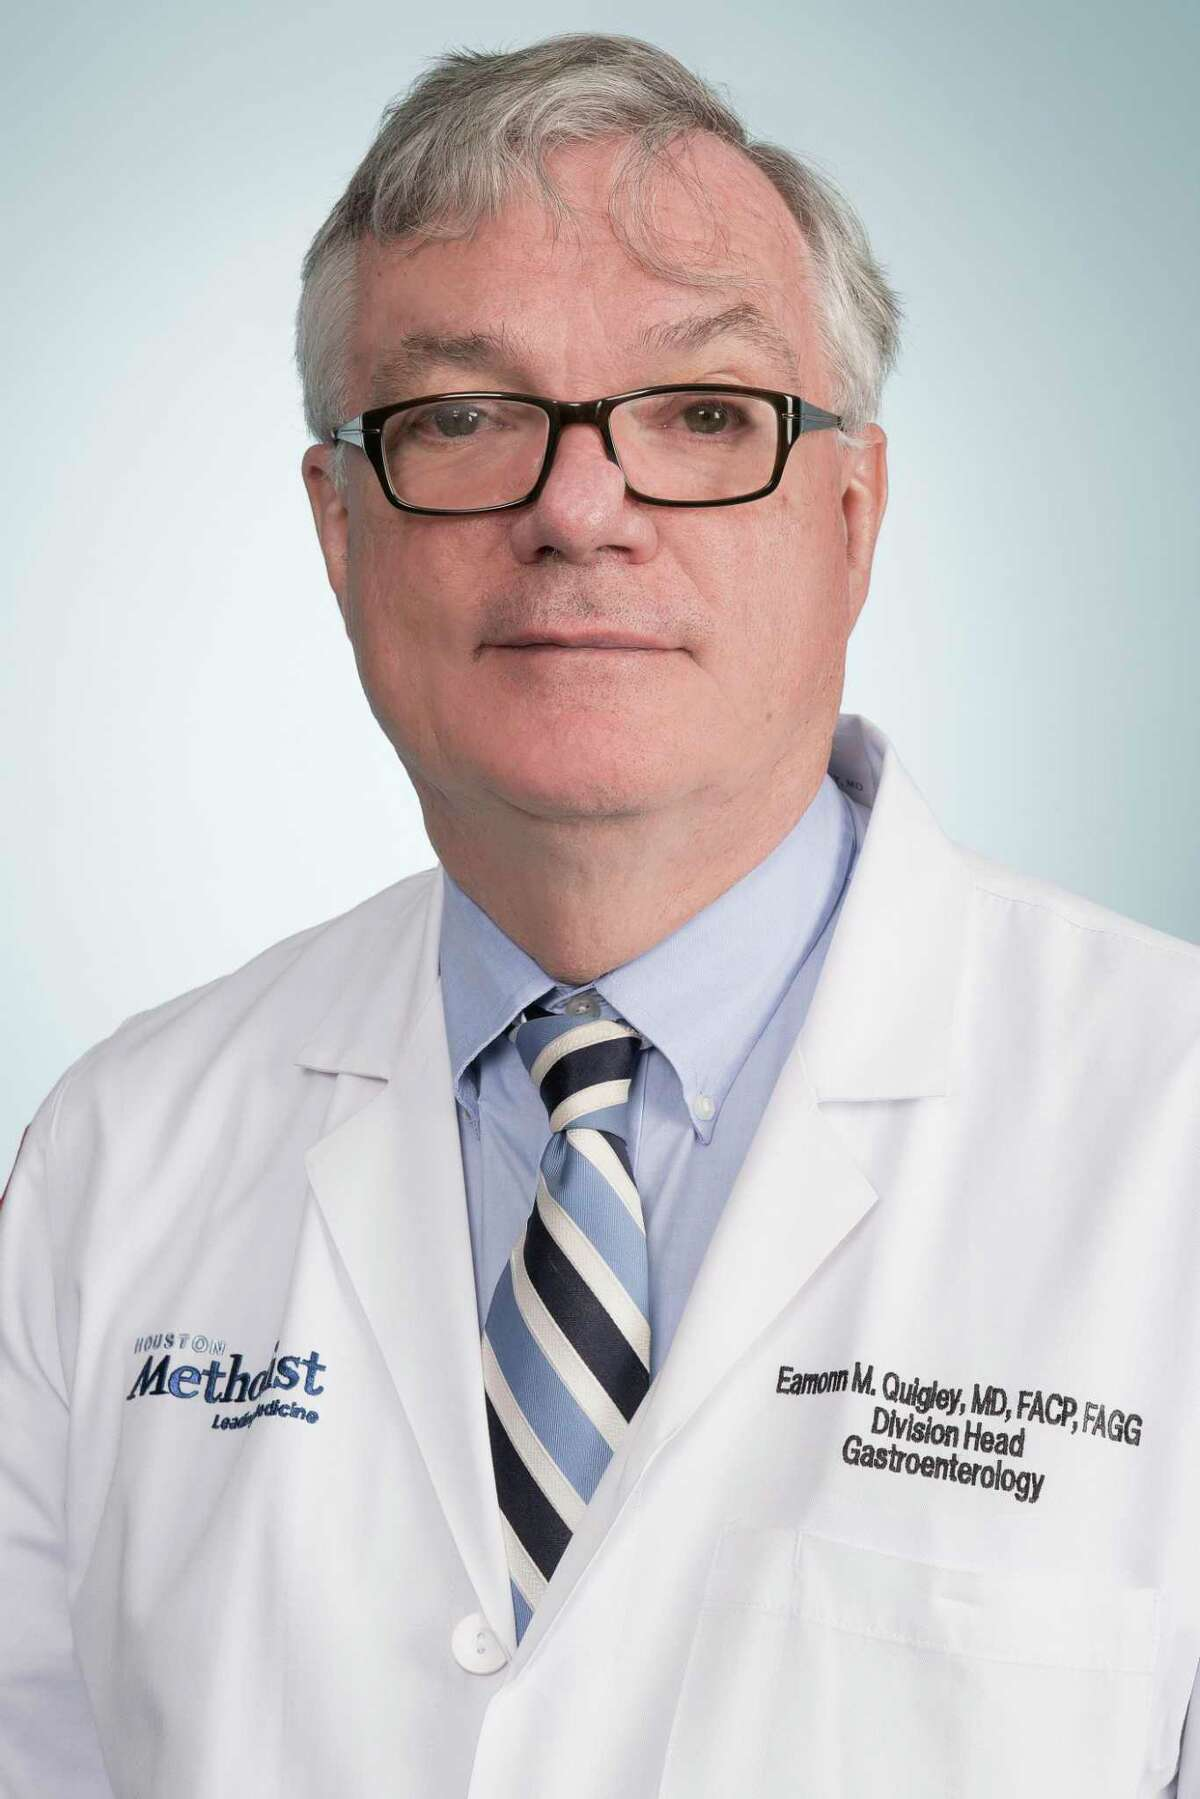 Dr. Eamonn Quigley of Houston Methodist Hospital was named a Master of the World Gastroenterology Organization on Sept. 23 at the World Congress of Gastroenterology 2019 in Istanbul, Turkey.